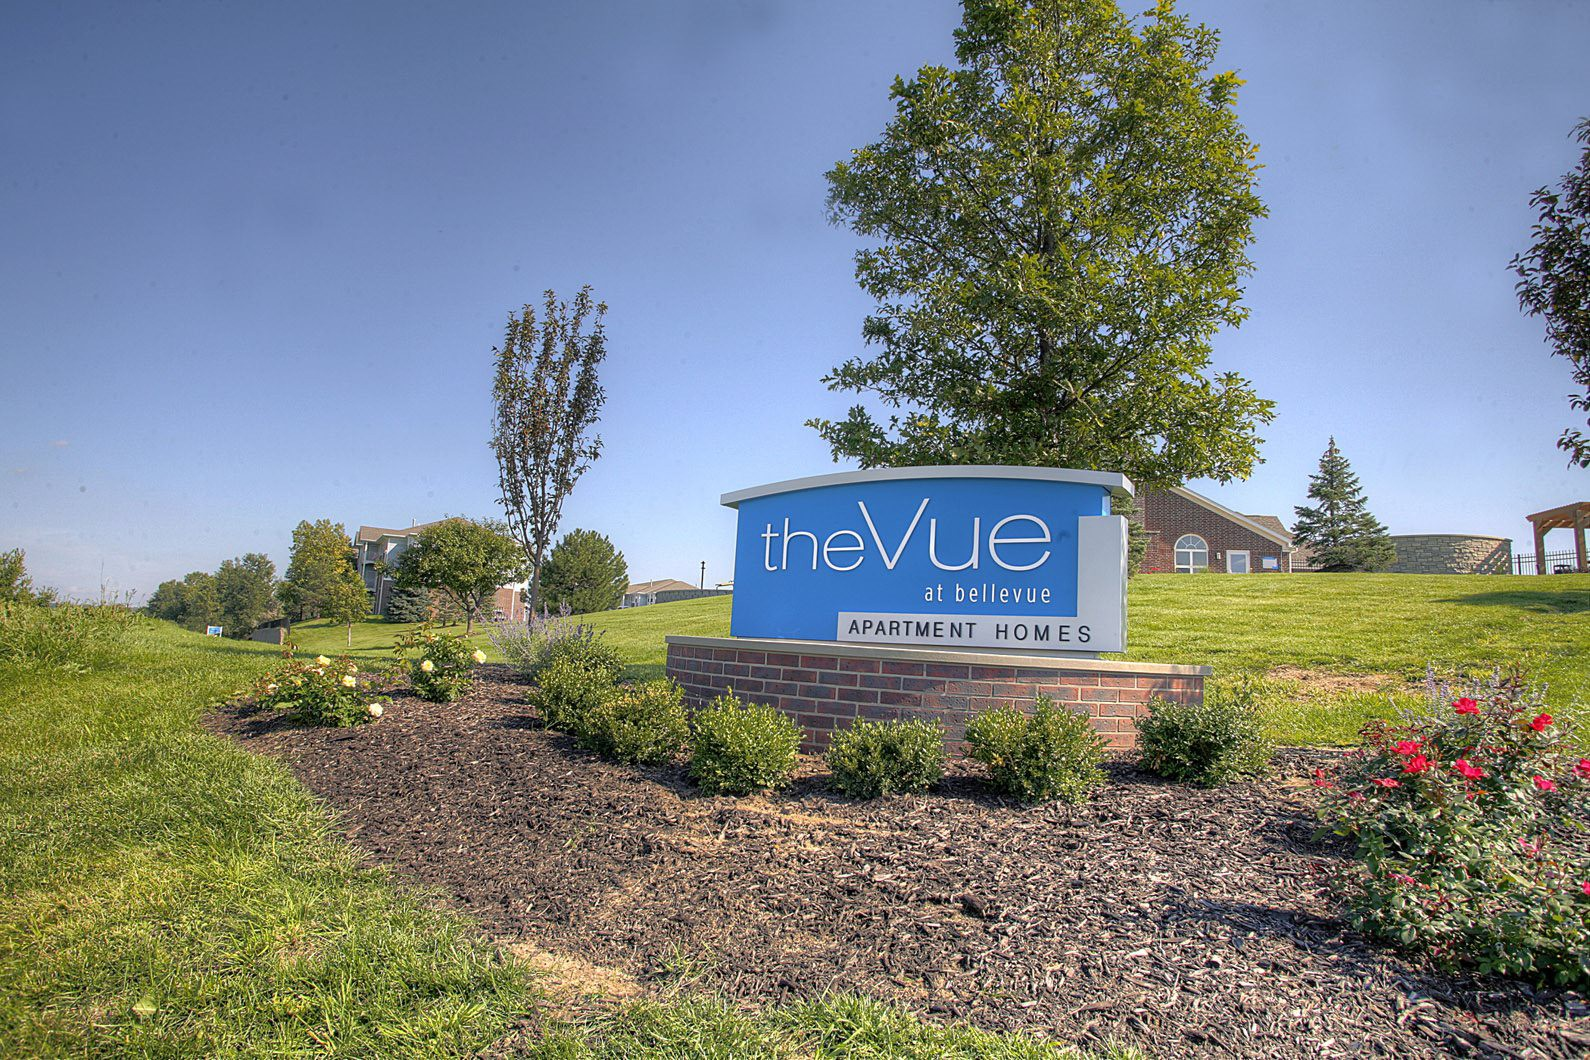 Apartments Near Bellevue Vue, The for Bellevue University Students in Bellevue, NE